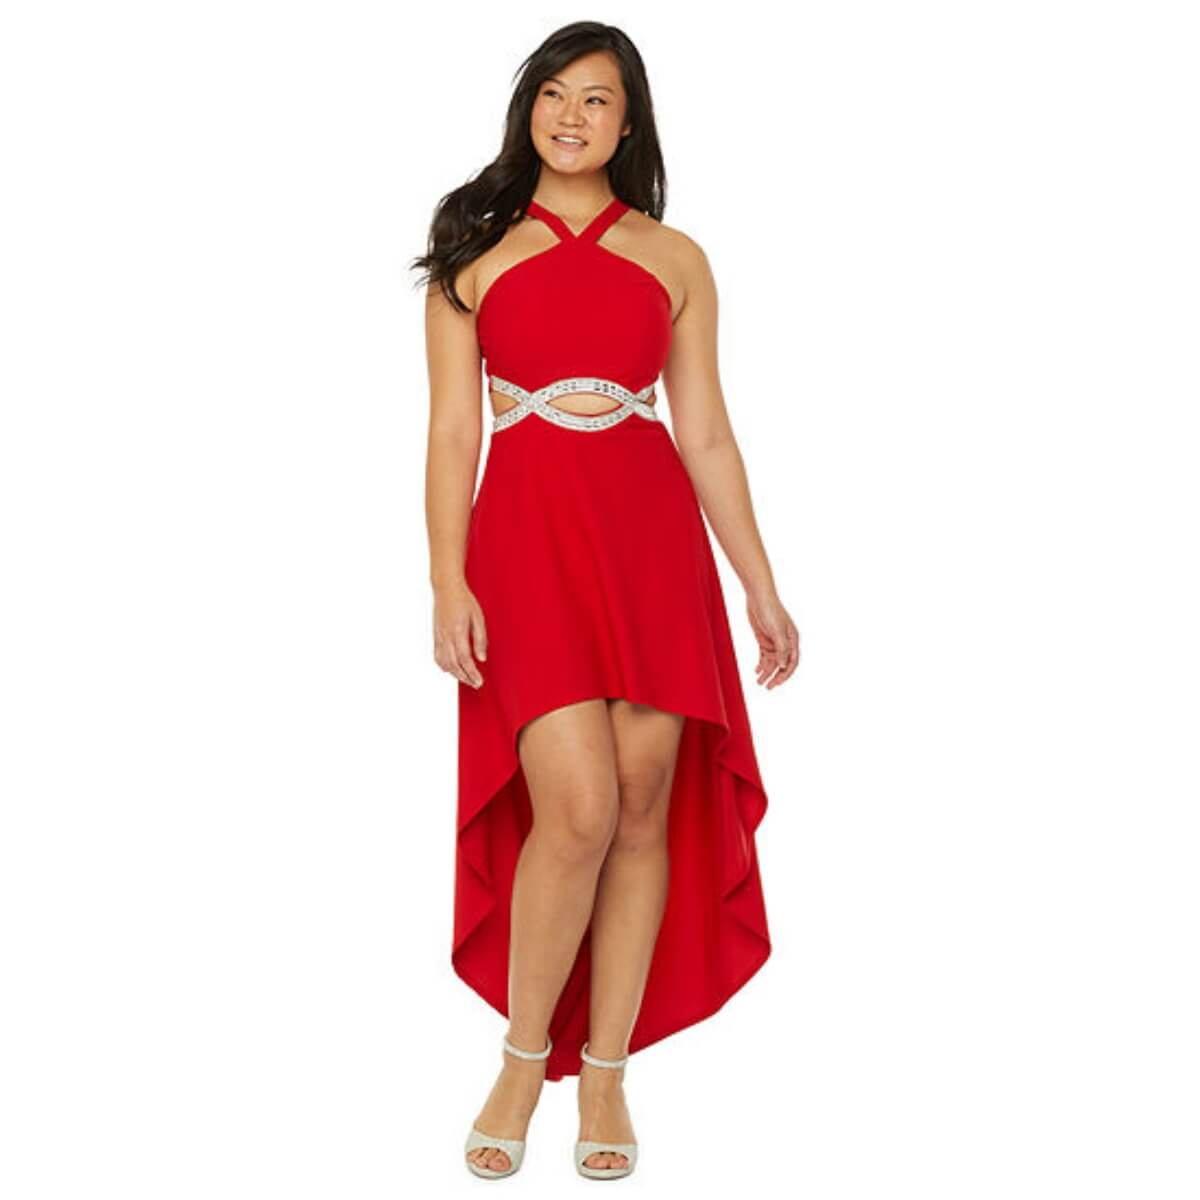 jcpenny prom dress